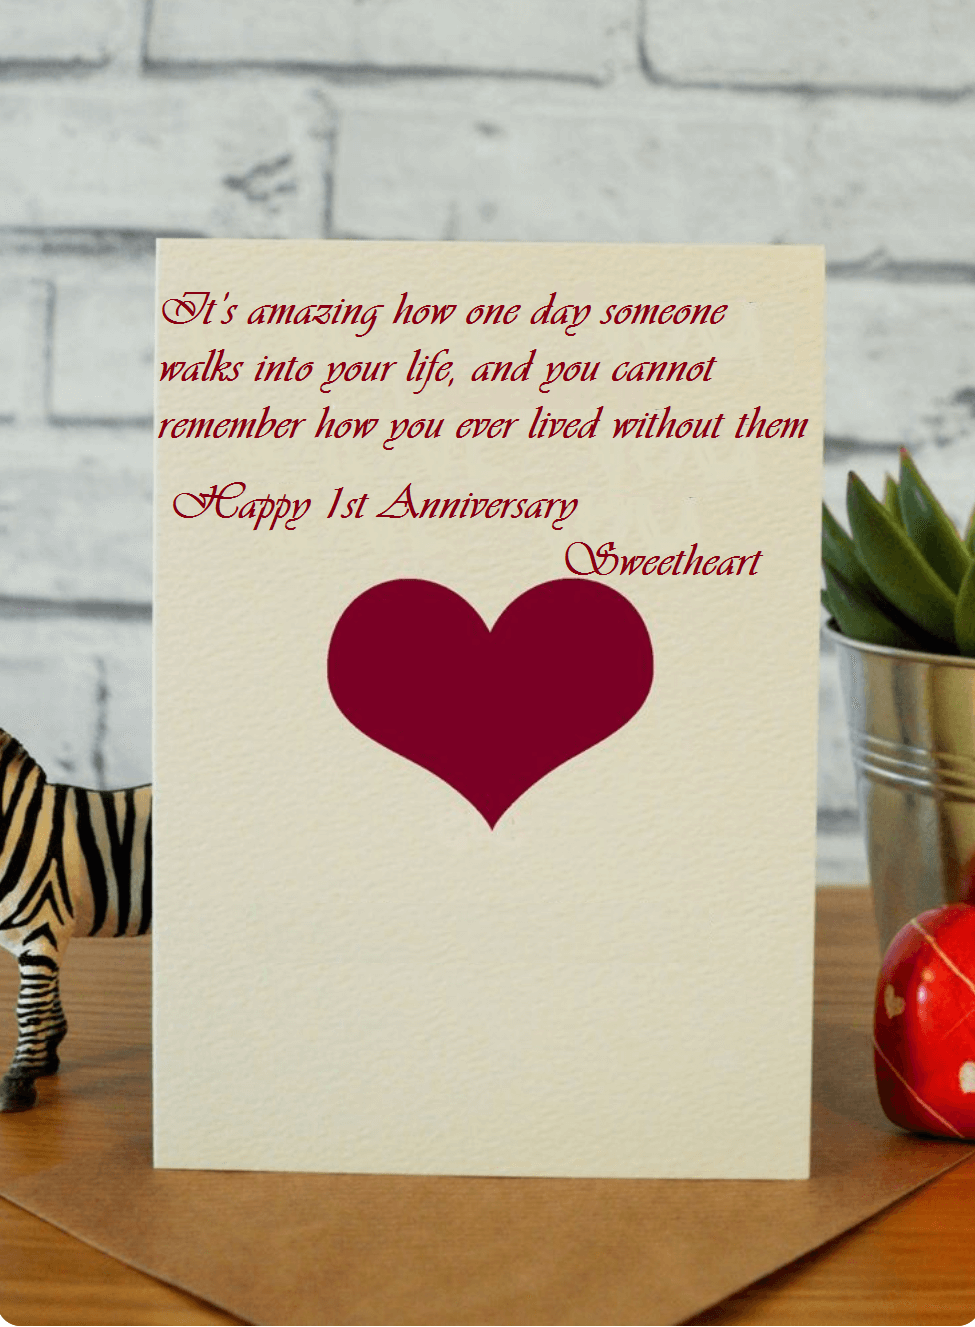 First Wedding Anniversary Wishes For Wife Quotes Anniversary Wishes For Wife Wedding Anniversary Wishes First Wedding Anniversary